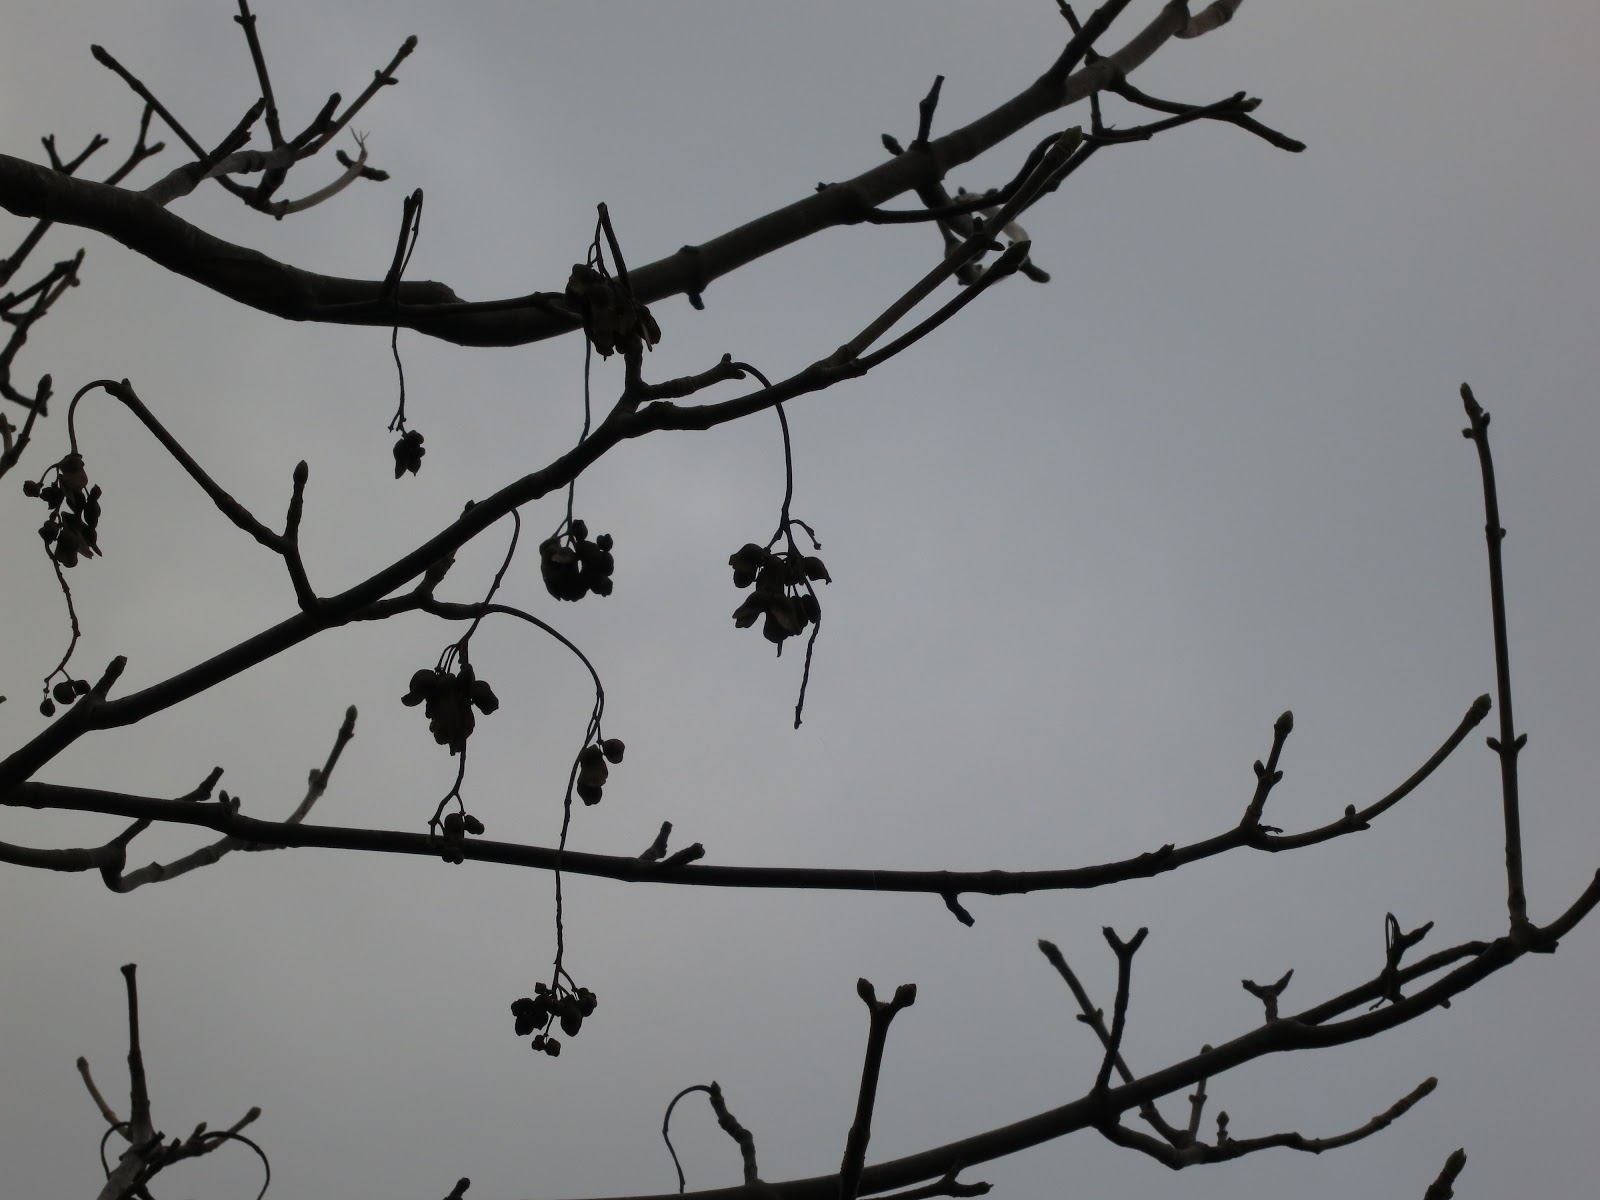 Silhouettes of the 'keys' of the tree (seeds) twigs and branches against a grey sky.